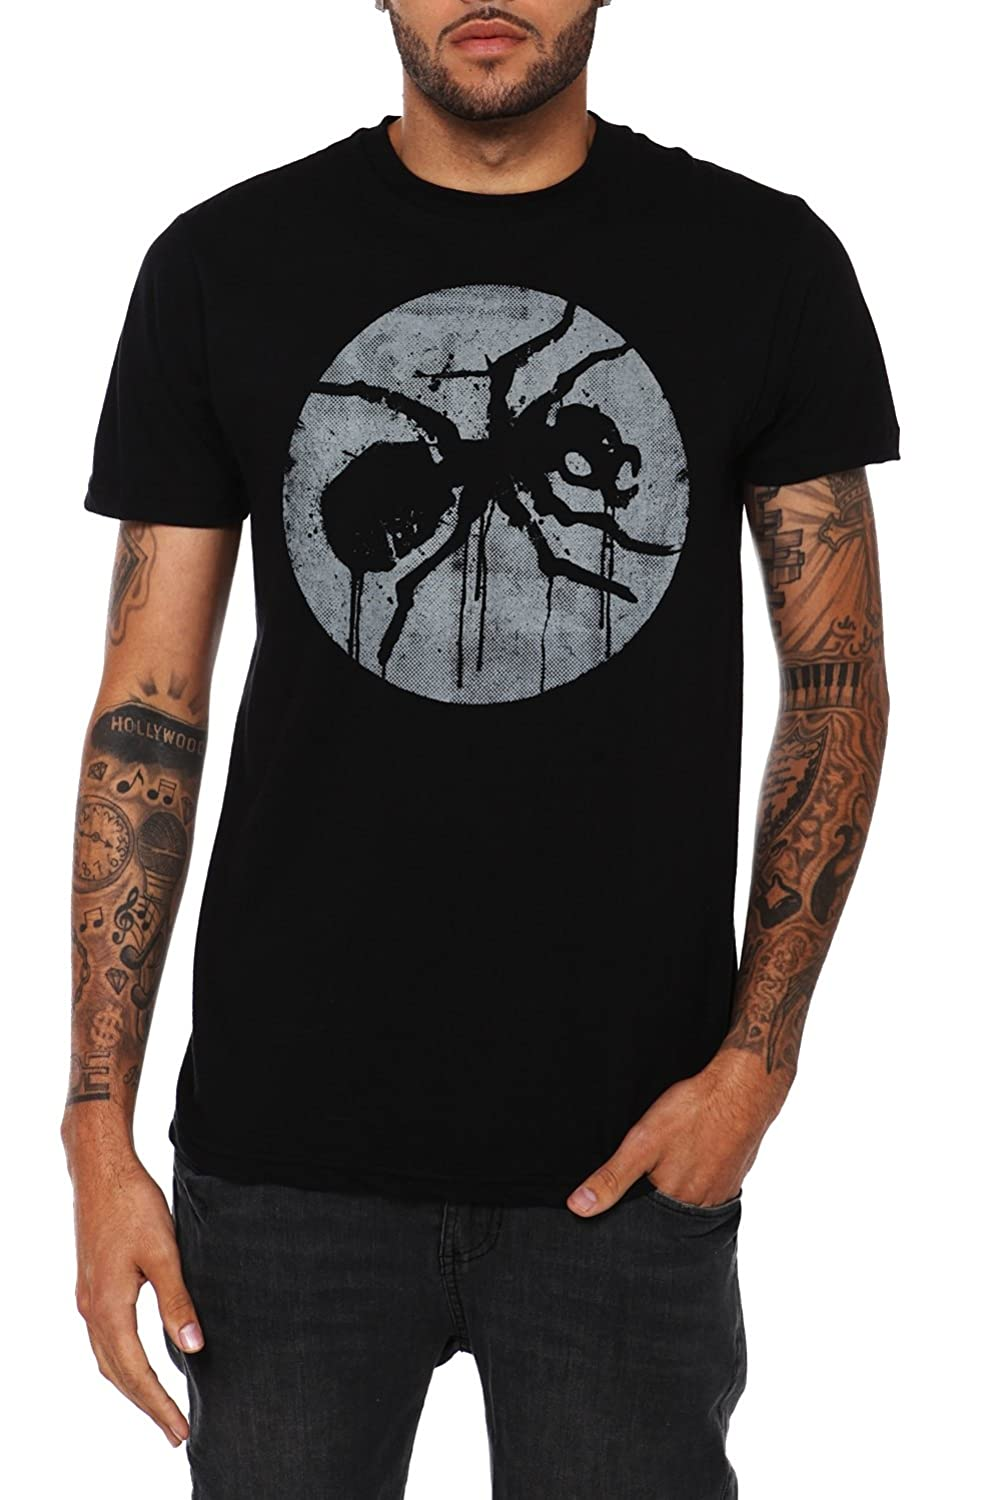 The Prodigy Ant Logo T-Shirt the prodigy ant logo t shirt